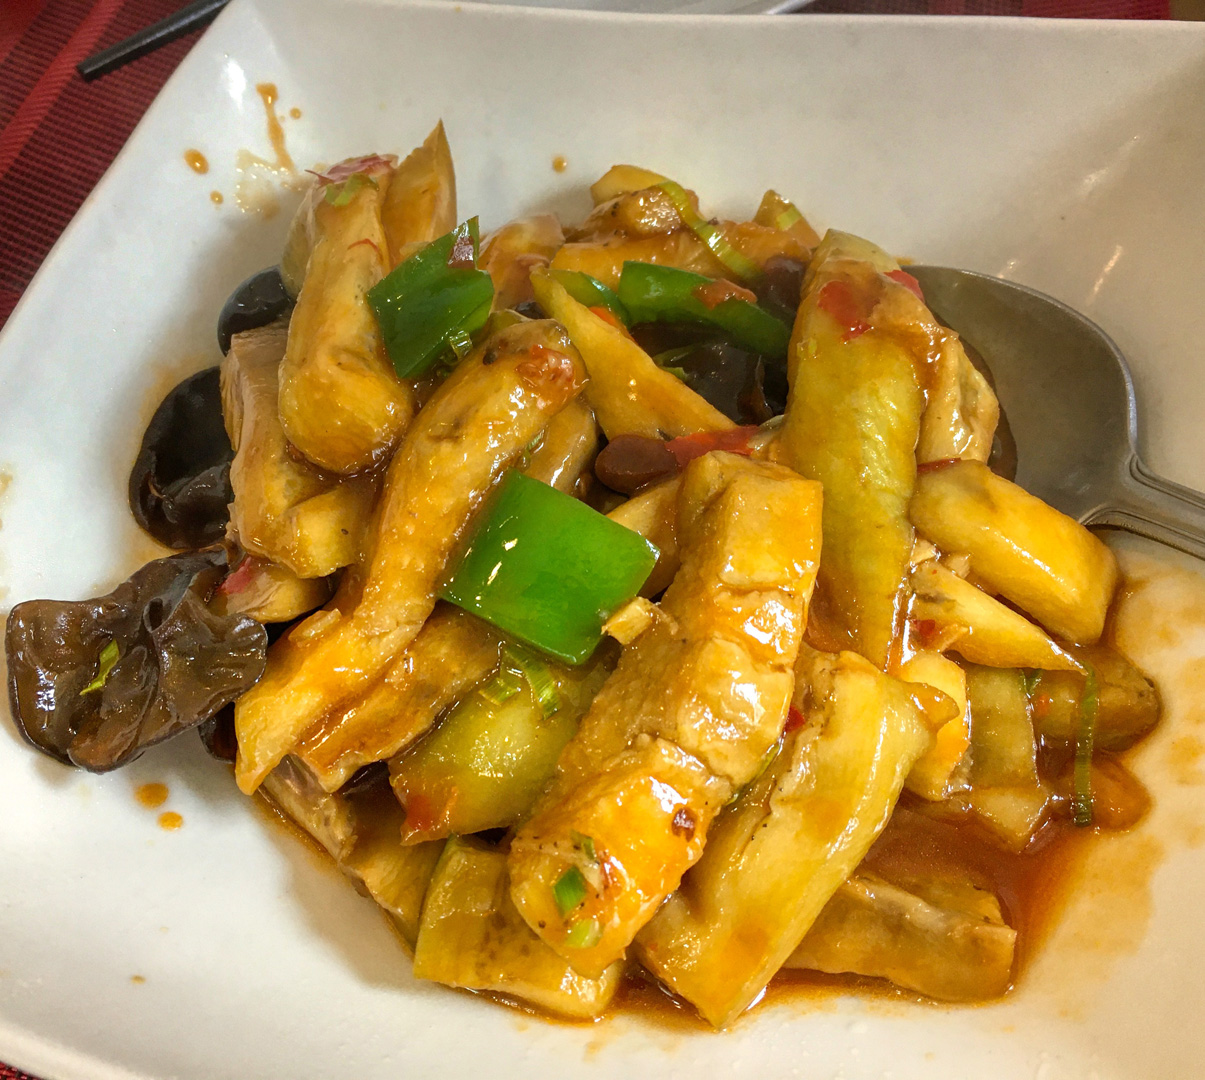 Hui Kitchen's Authentic Chinese Braised Eggplant with Tree Mushrooms